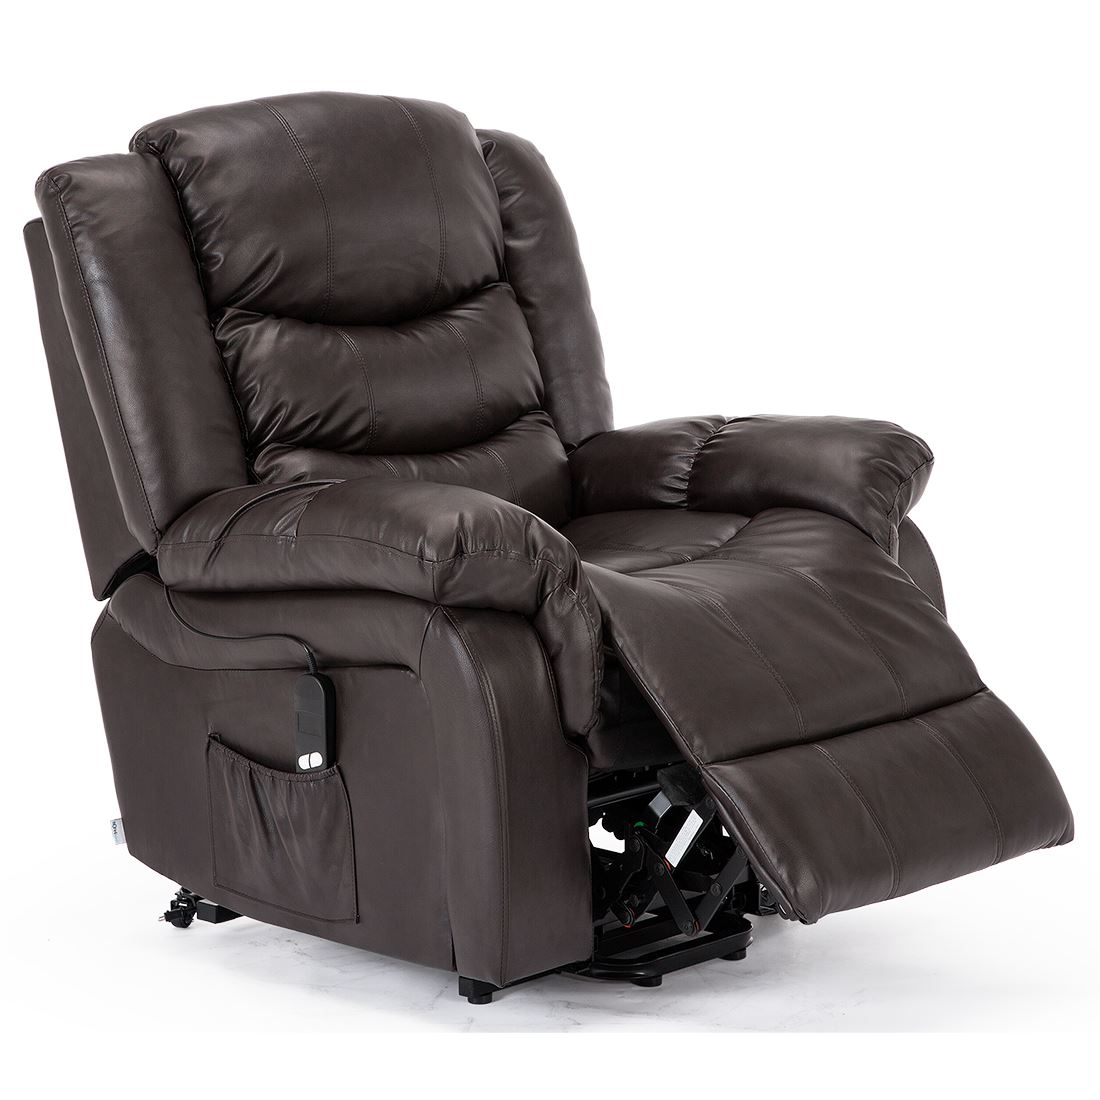 SEATTLE-ELECTRIC-RISE-REAL-LEATHER-RECLINER-ARMCHAIR-SOFA-HOME-LOUNGE-CHAIR thumbnail 14